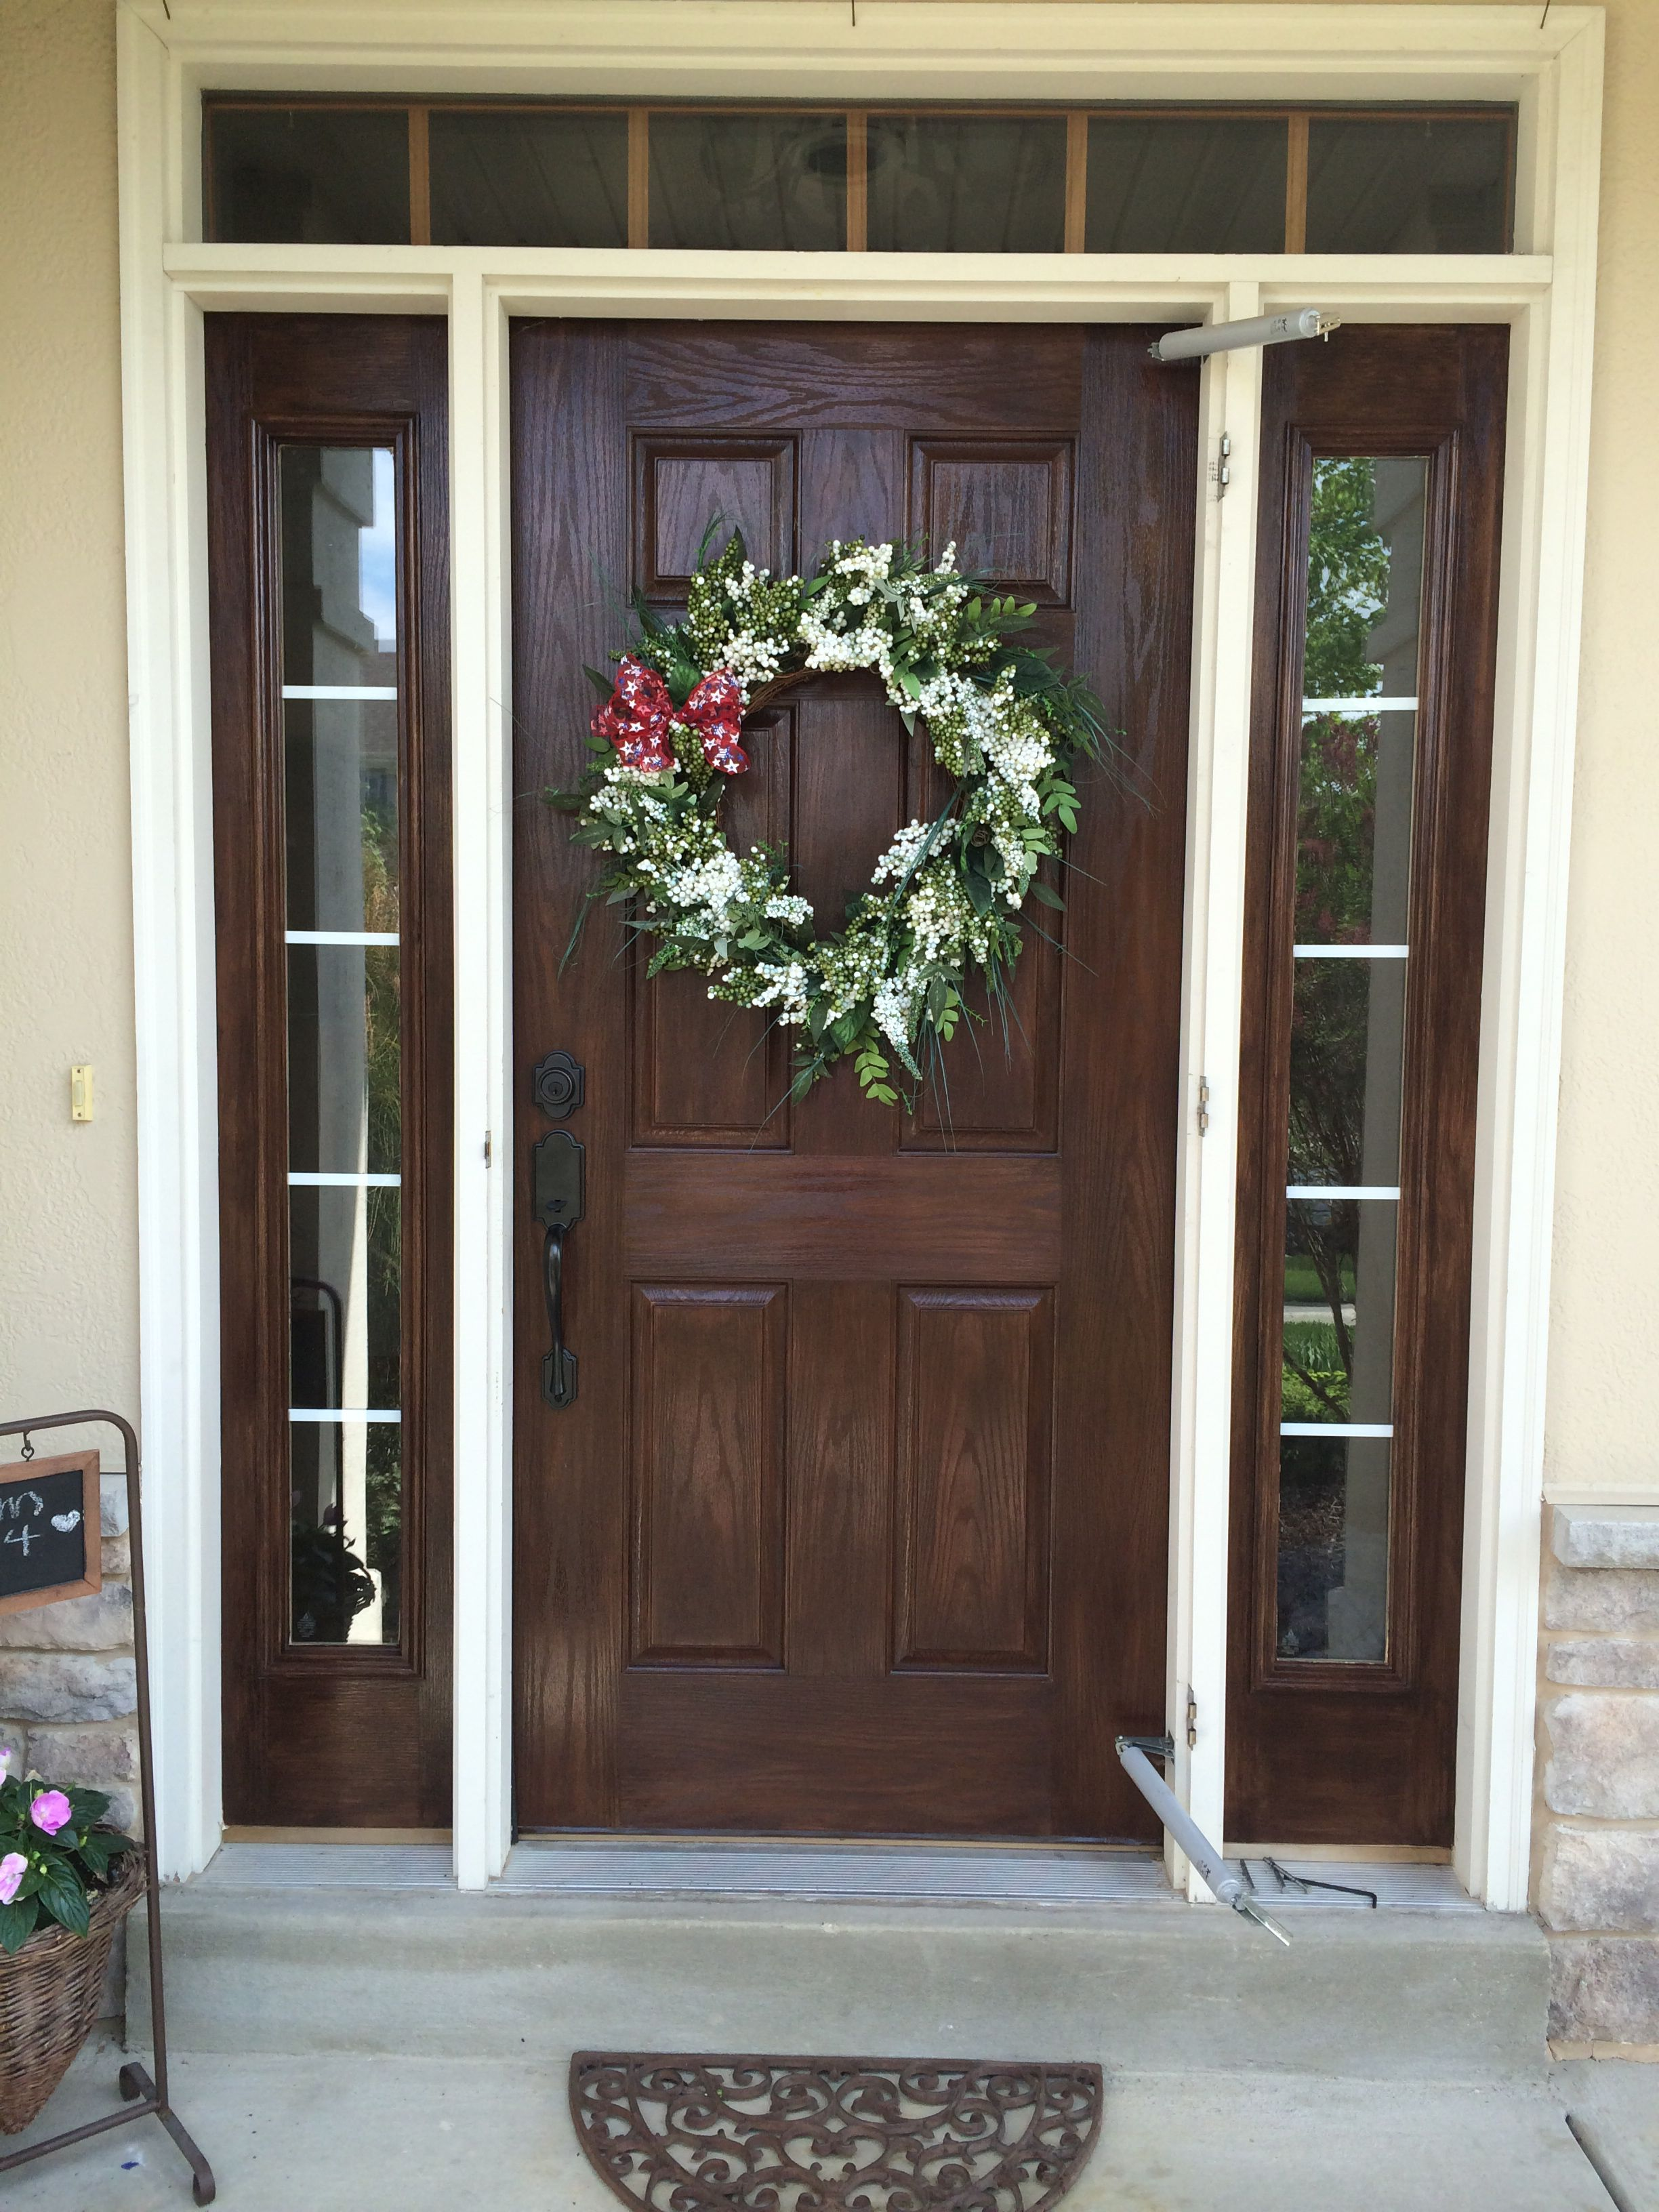 Gel Stained Fiberglass Door I Used Old Masters Gel Stain Over My